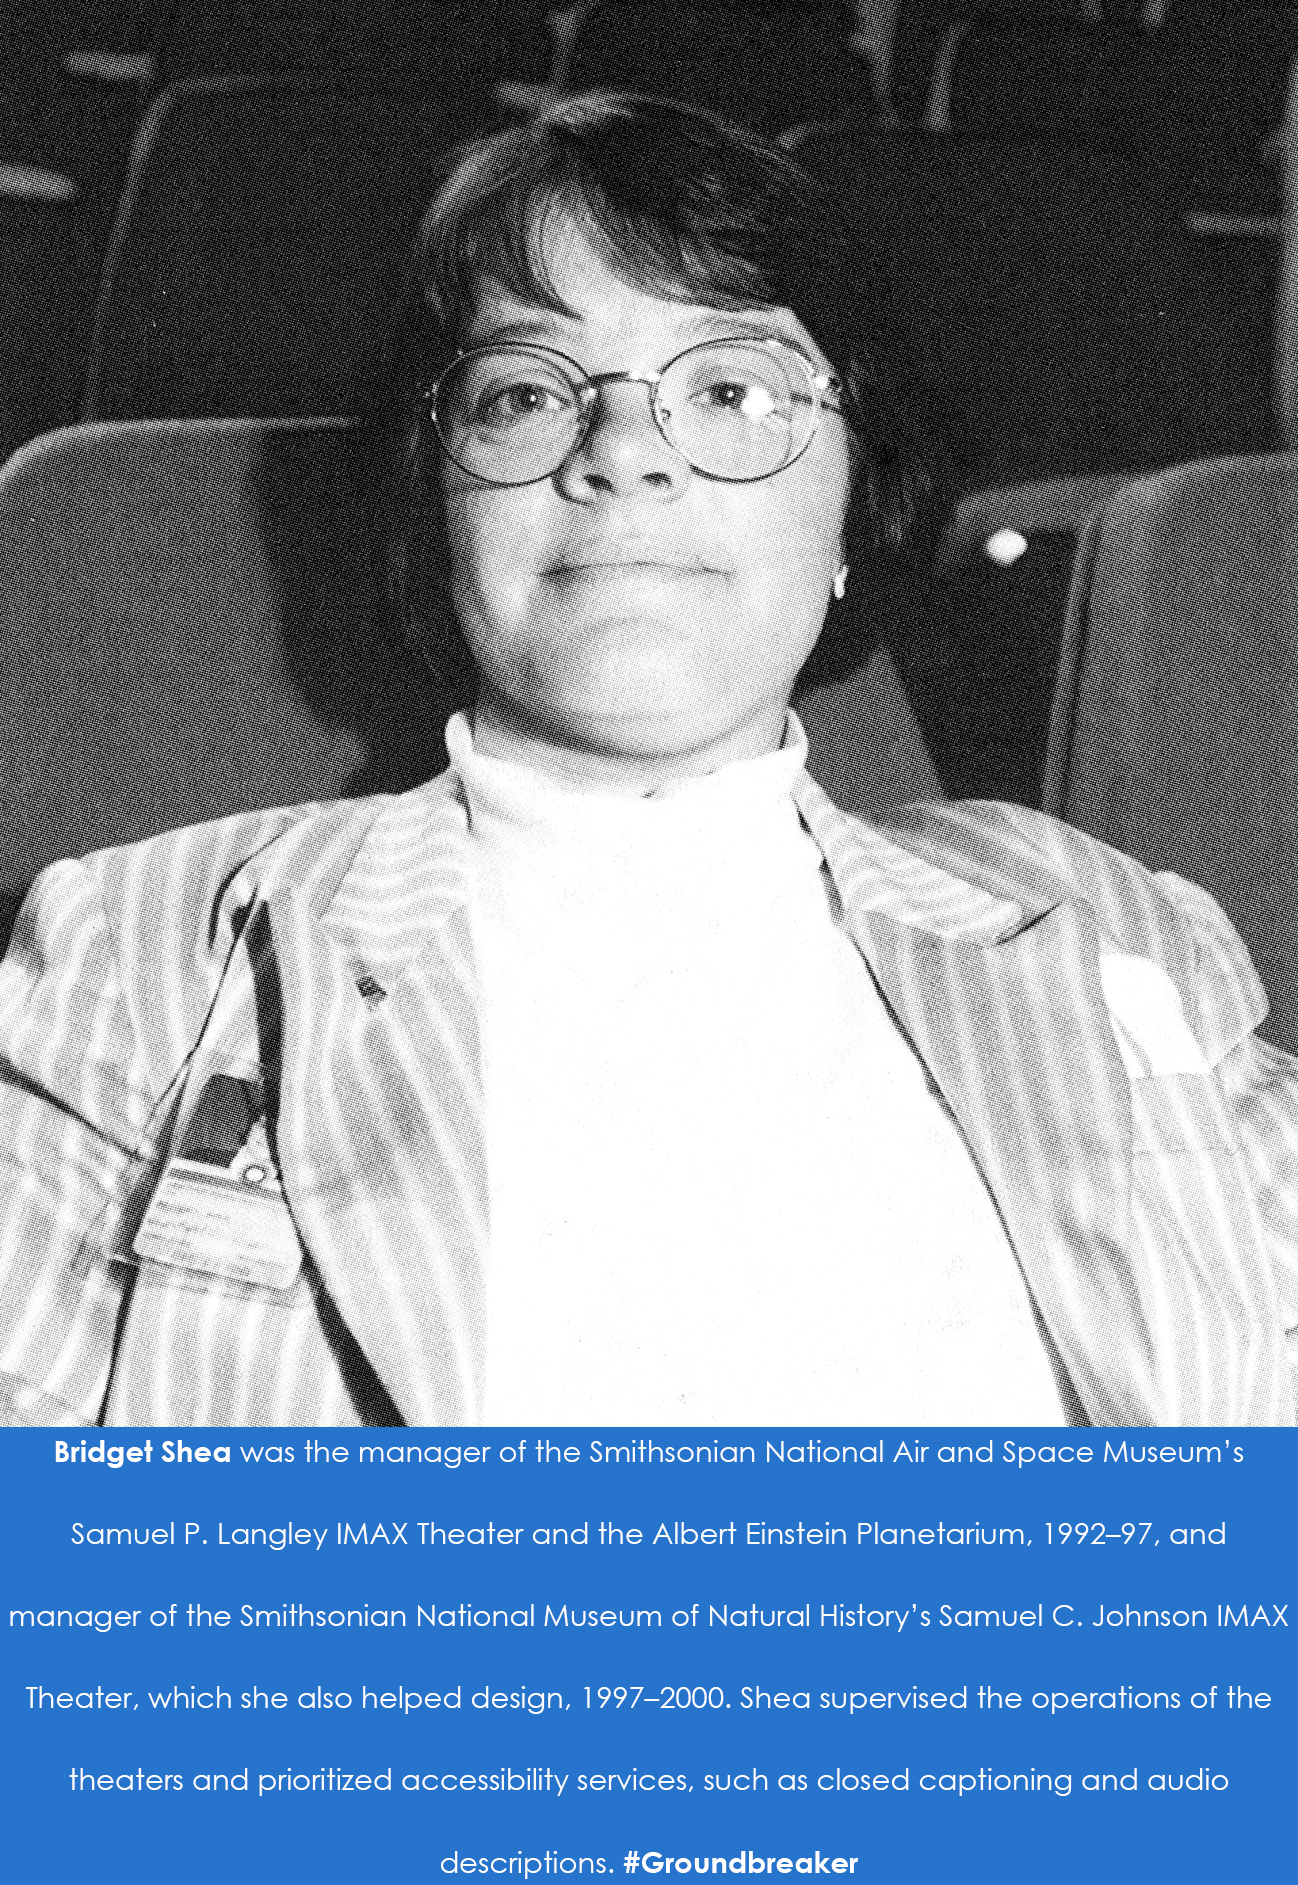 Bridget Shea leans back in a theater seat. Caption: Bridget Shea was the manager of the Smithsonian